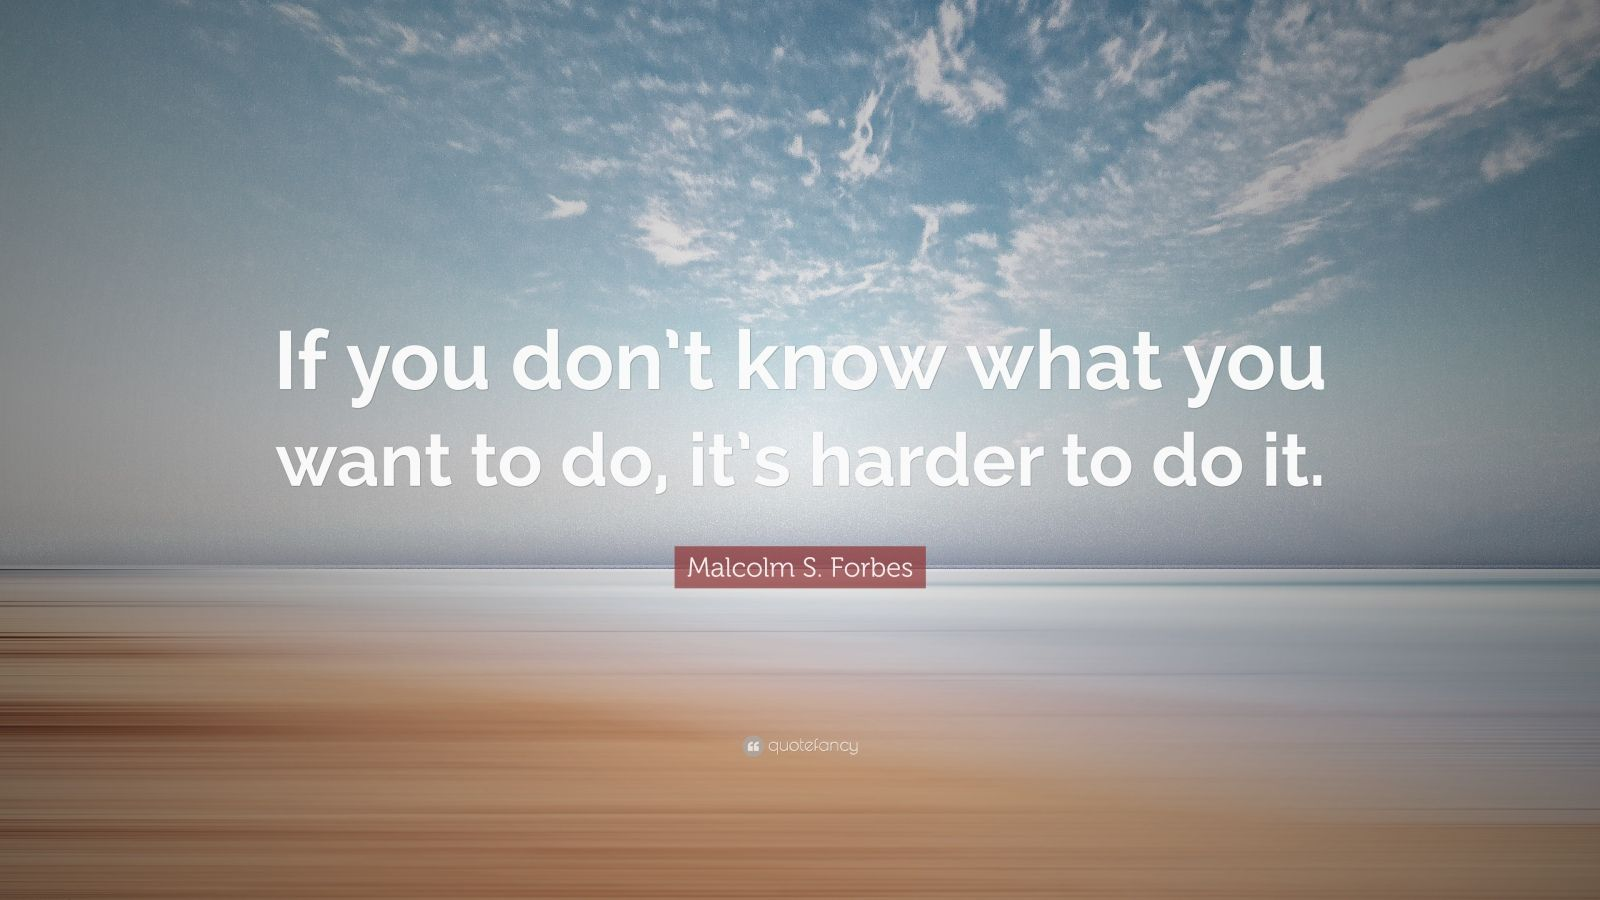 """Malcolm S. Forbes Quote: """"If you don't know what you want to do, it's harder to do it."""""""